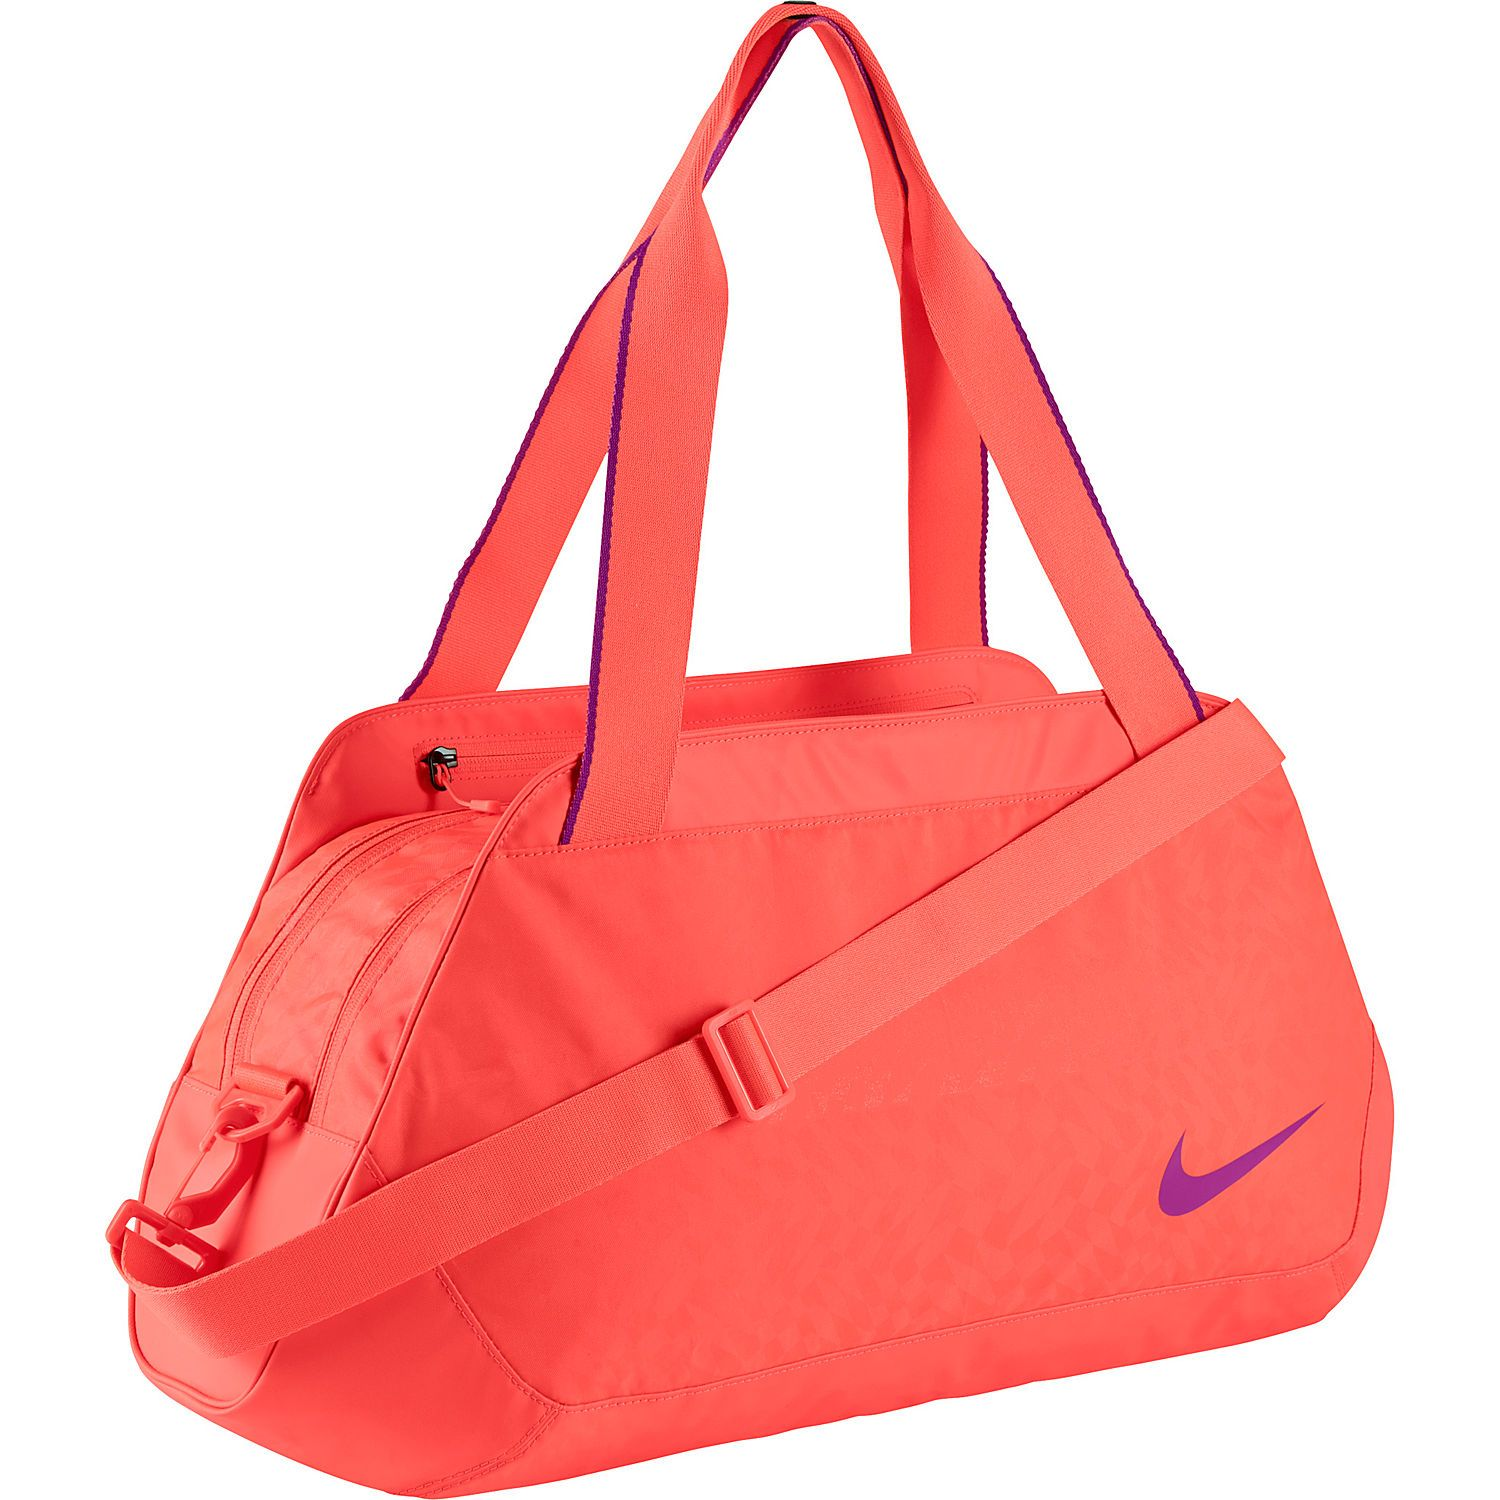 219c52f16d Buy the Nike C72 Legend 2.0 M Yoga Duffel at eBags - Pack your clothing and  gear for a trip to the gym or the yoga studio inside this sporty tote bag  fro